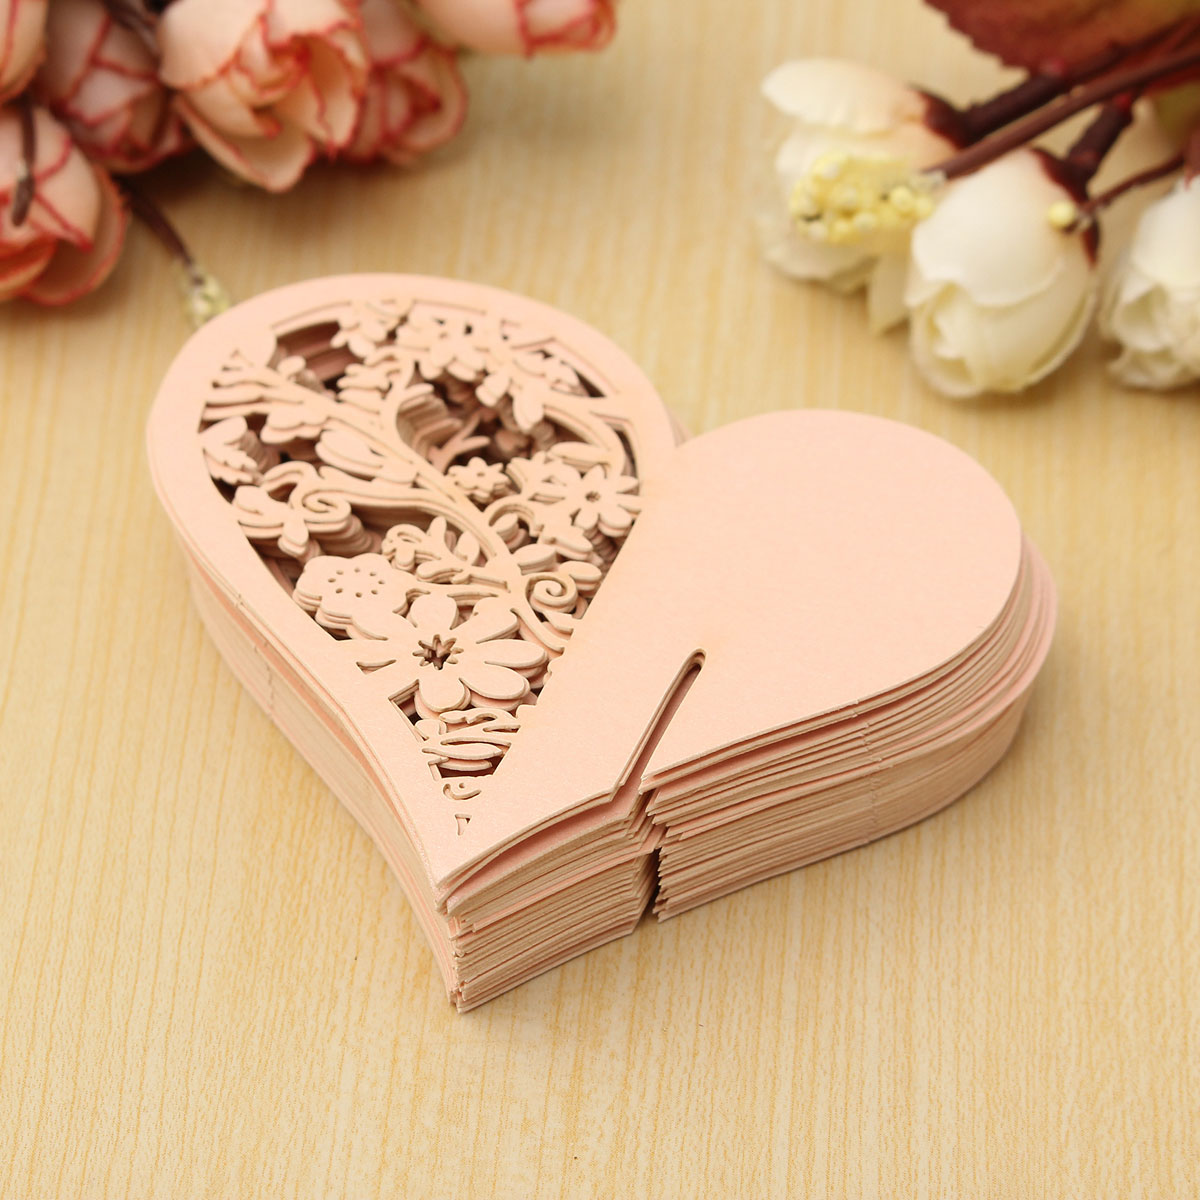 50Pcs Heart Wedding Name Place Cards Wine Glass Laser Cut Pearlescent Card Party Accessories